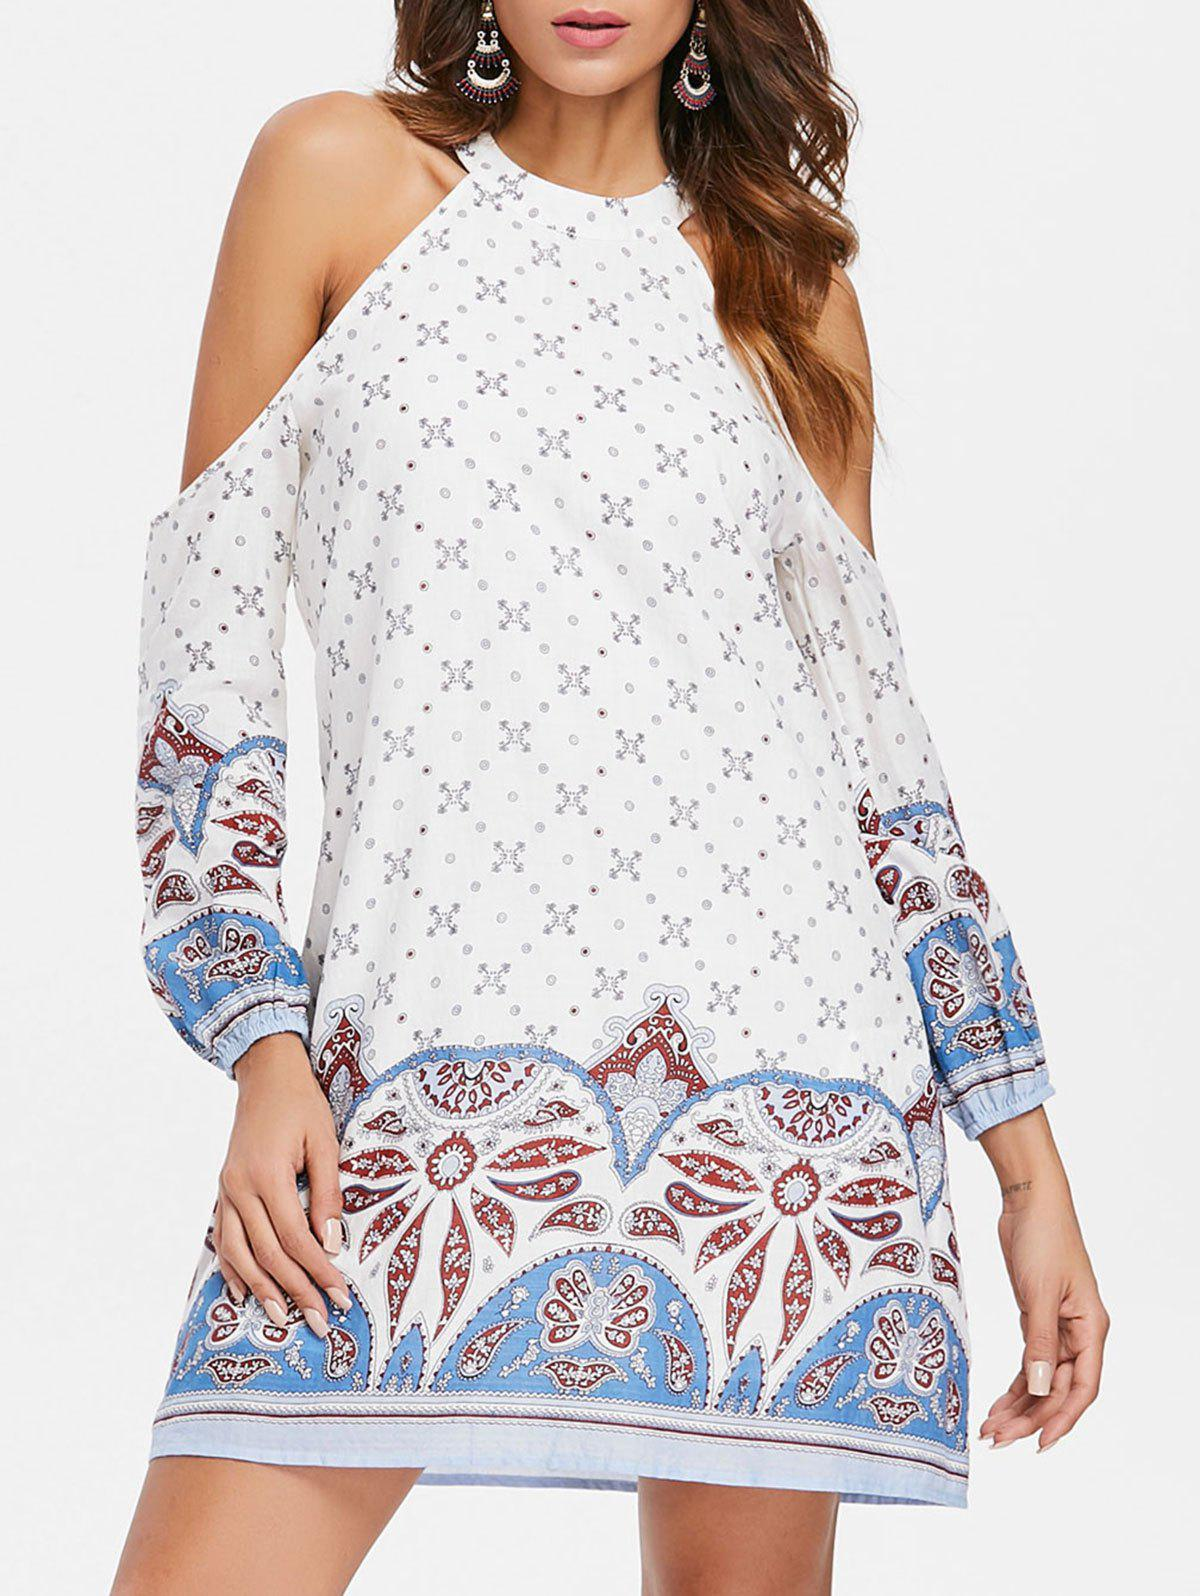 Paisley Tribal Print Cold Shoulder Shift Dress - MILK WHITE M